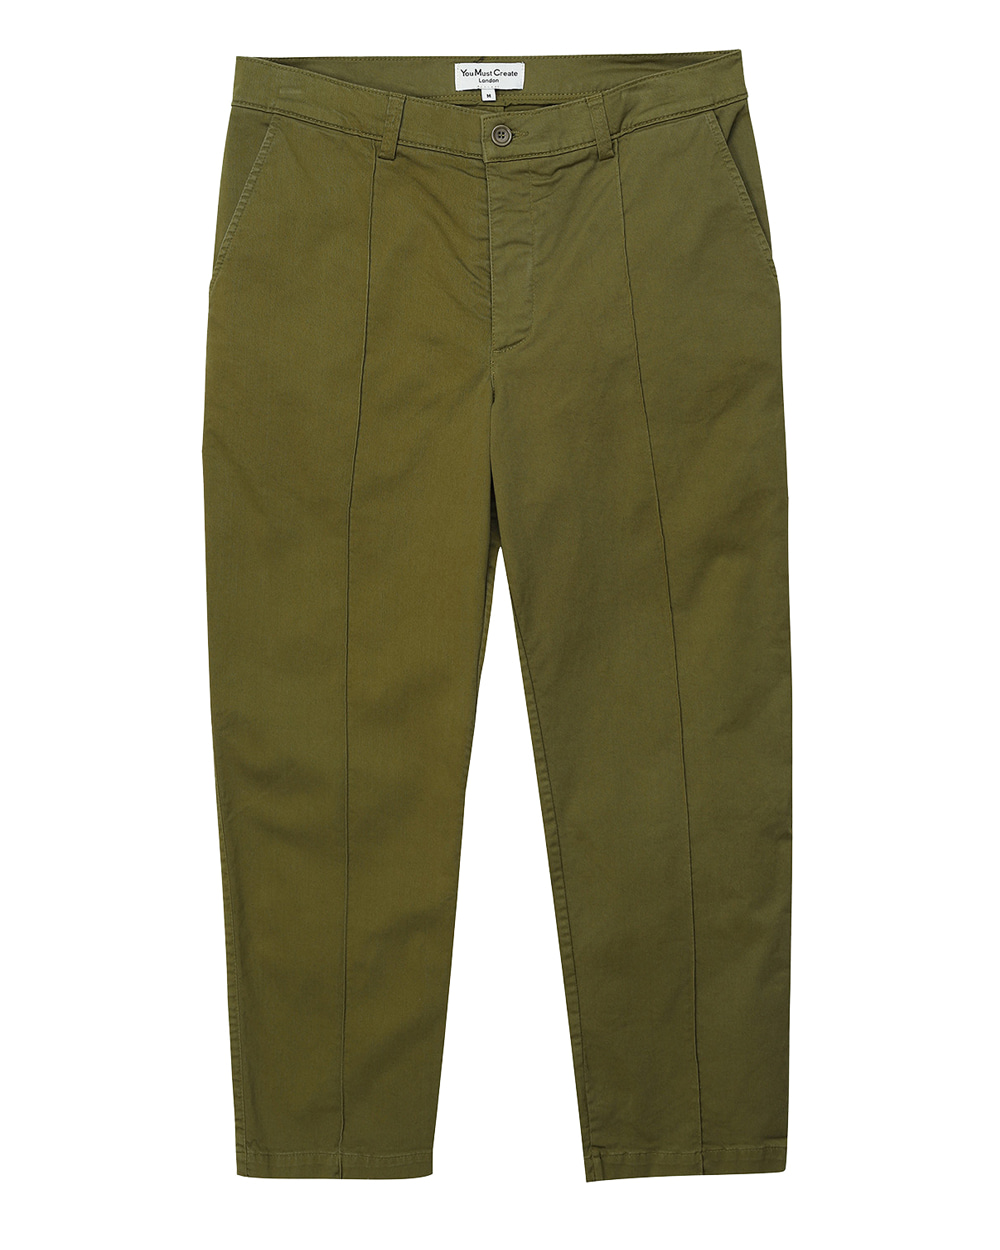 YMC Hand Me Down Trouser (Olive)